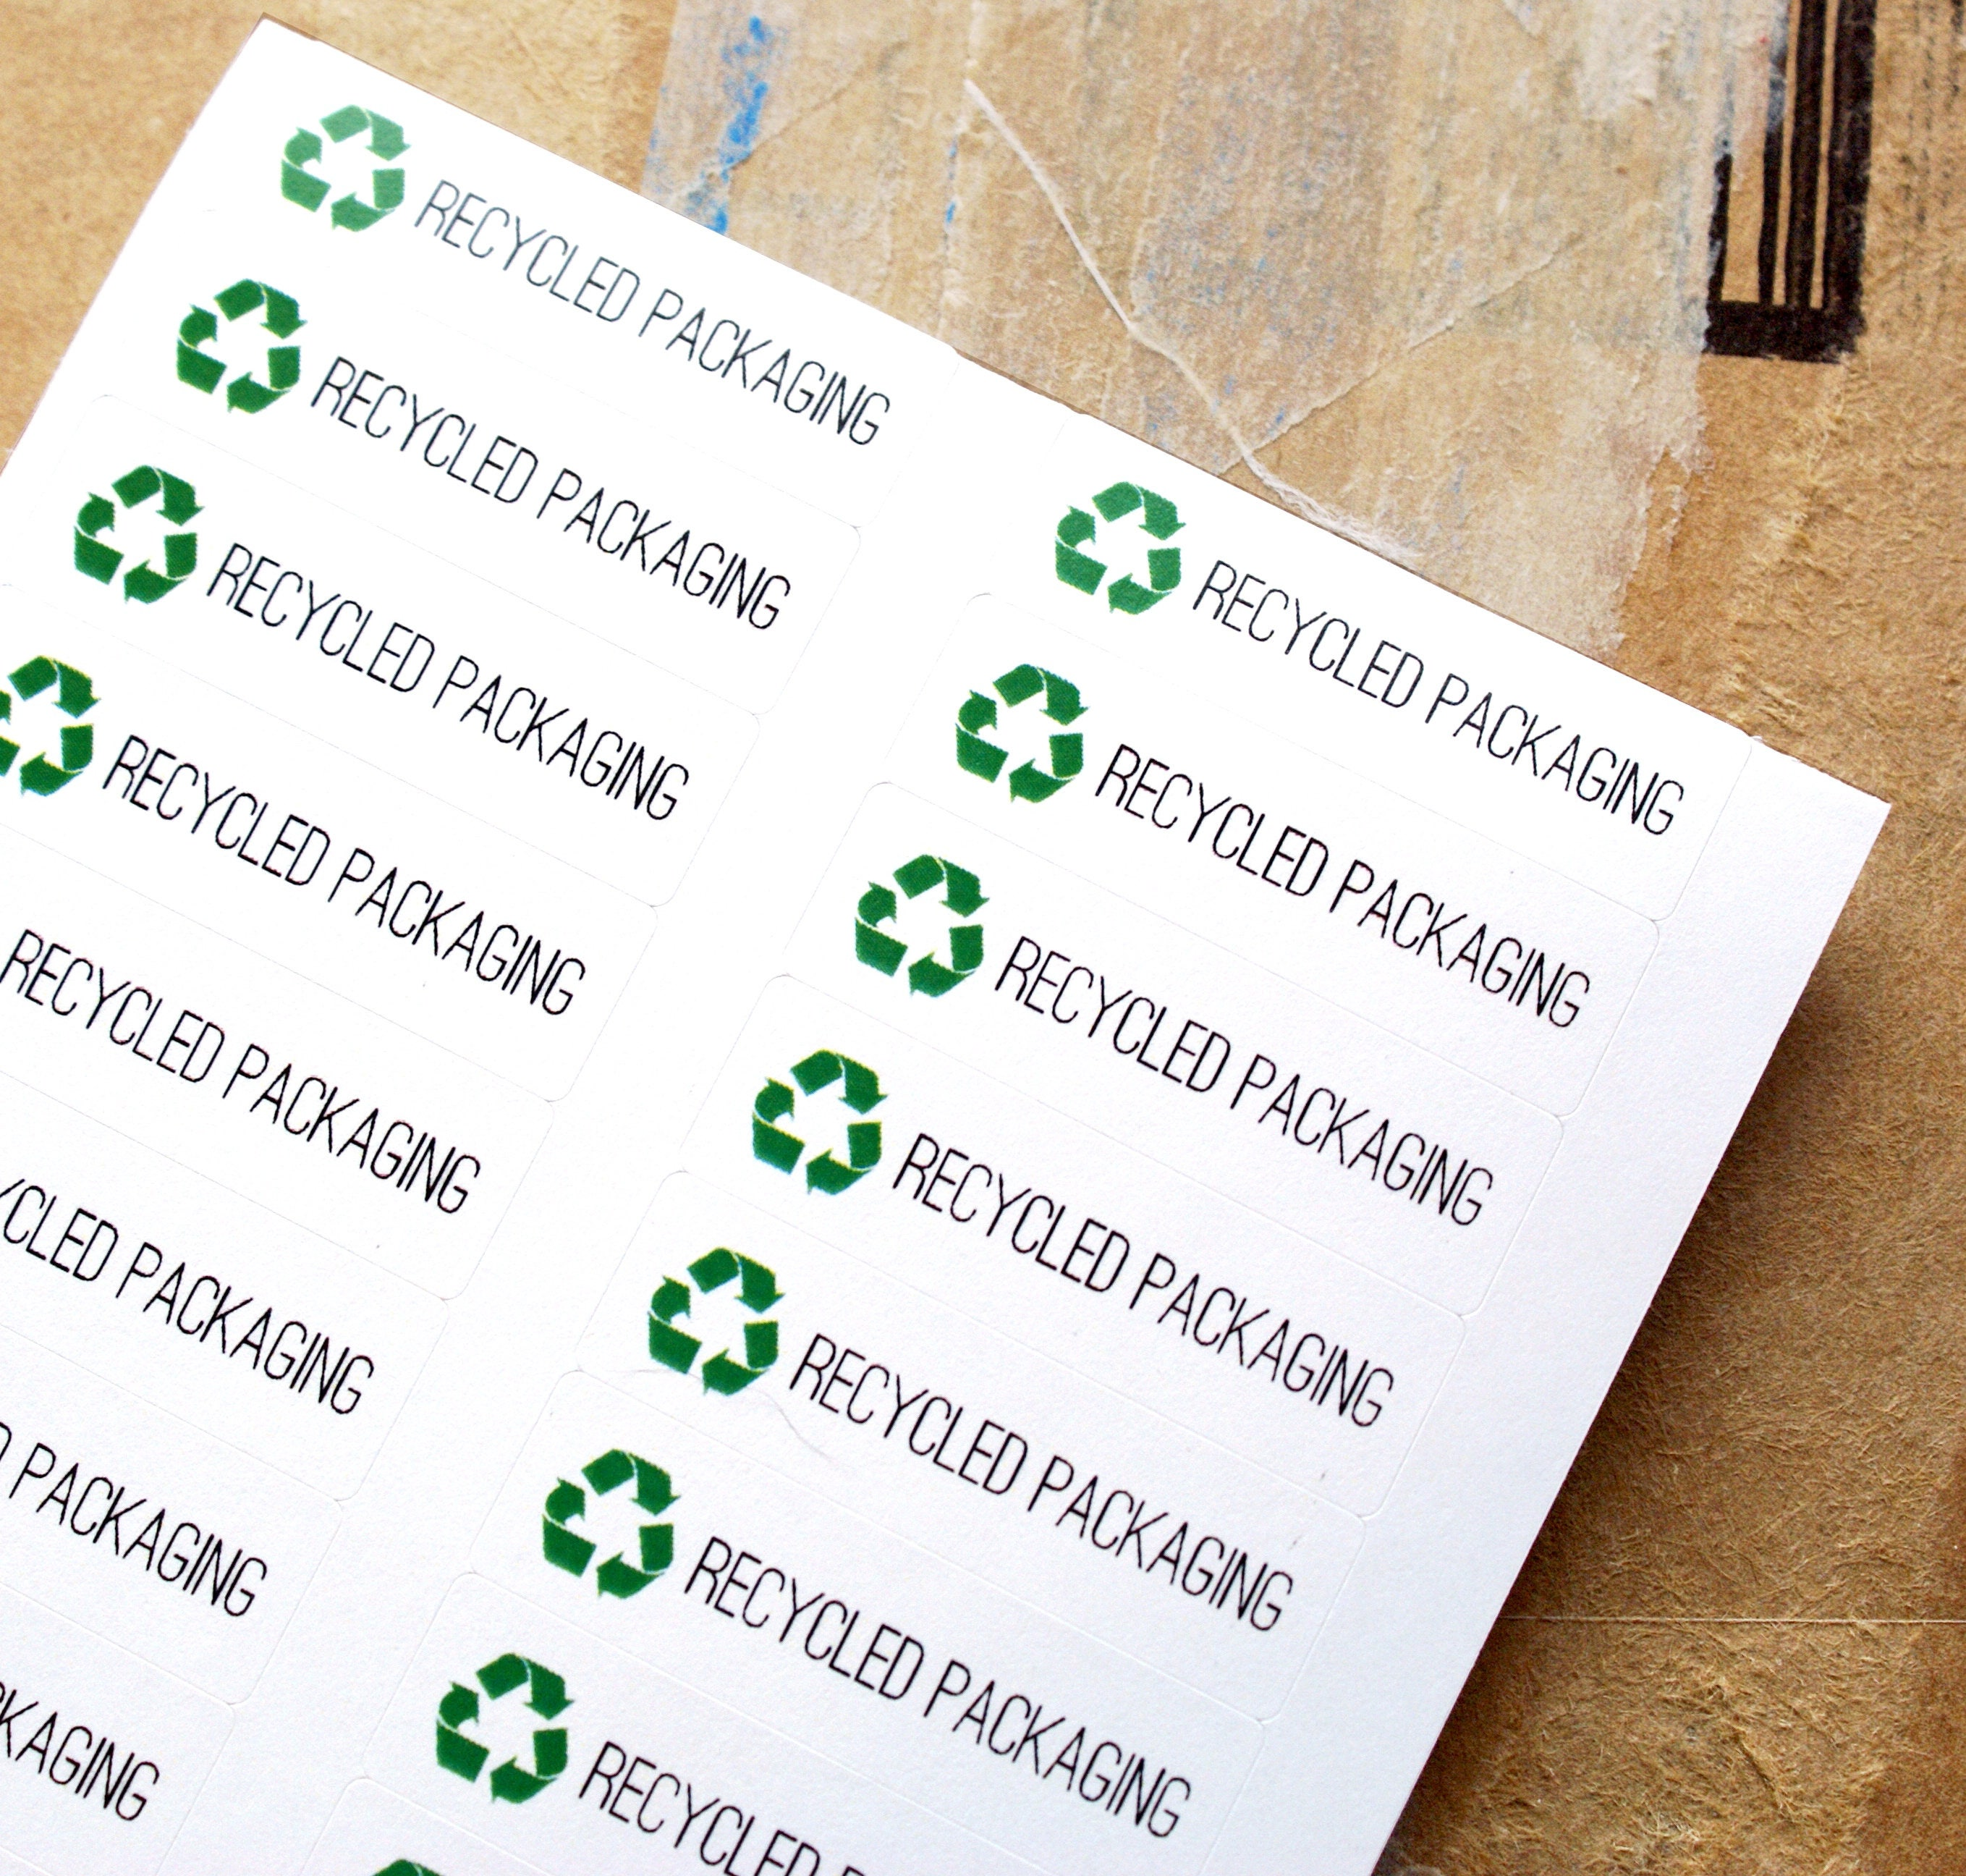 Recycled Packaging Recycle Stickers With Recycling Symbol Etsy